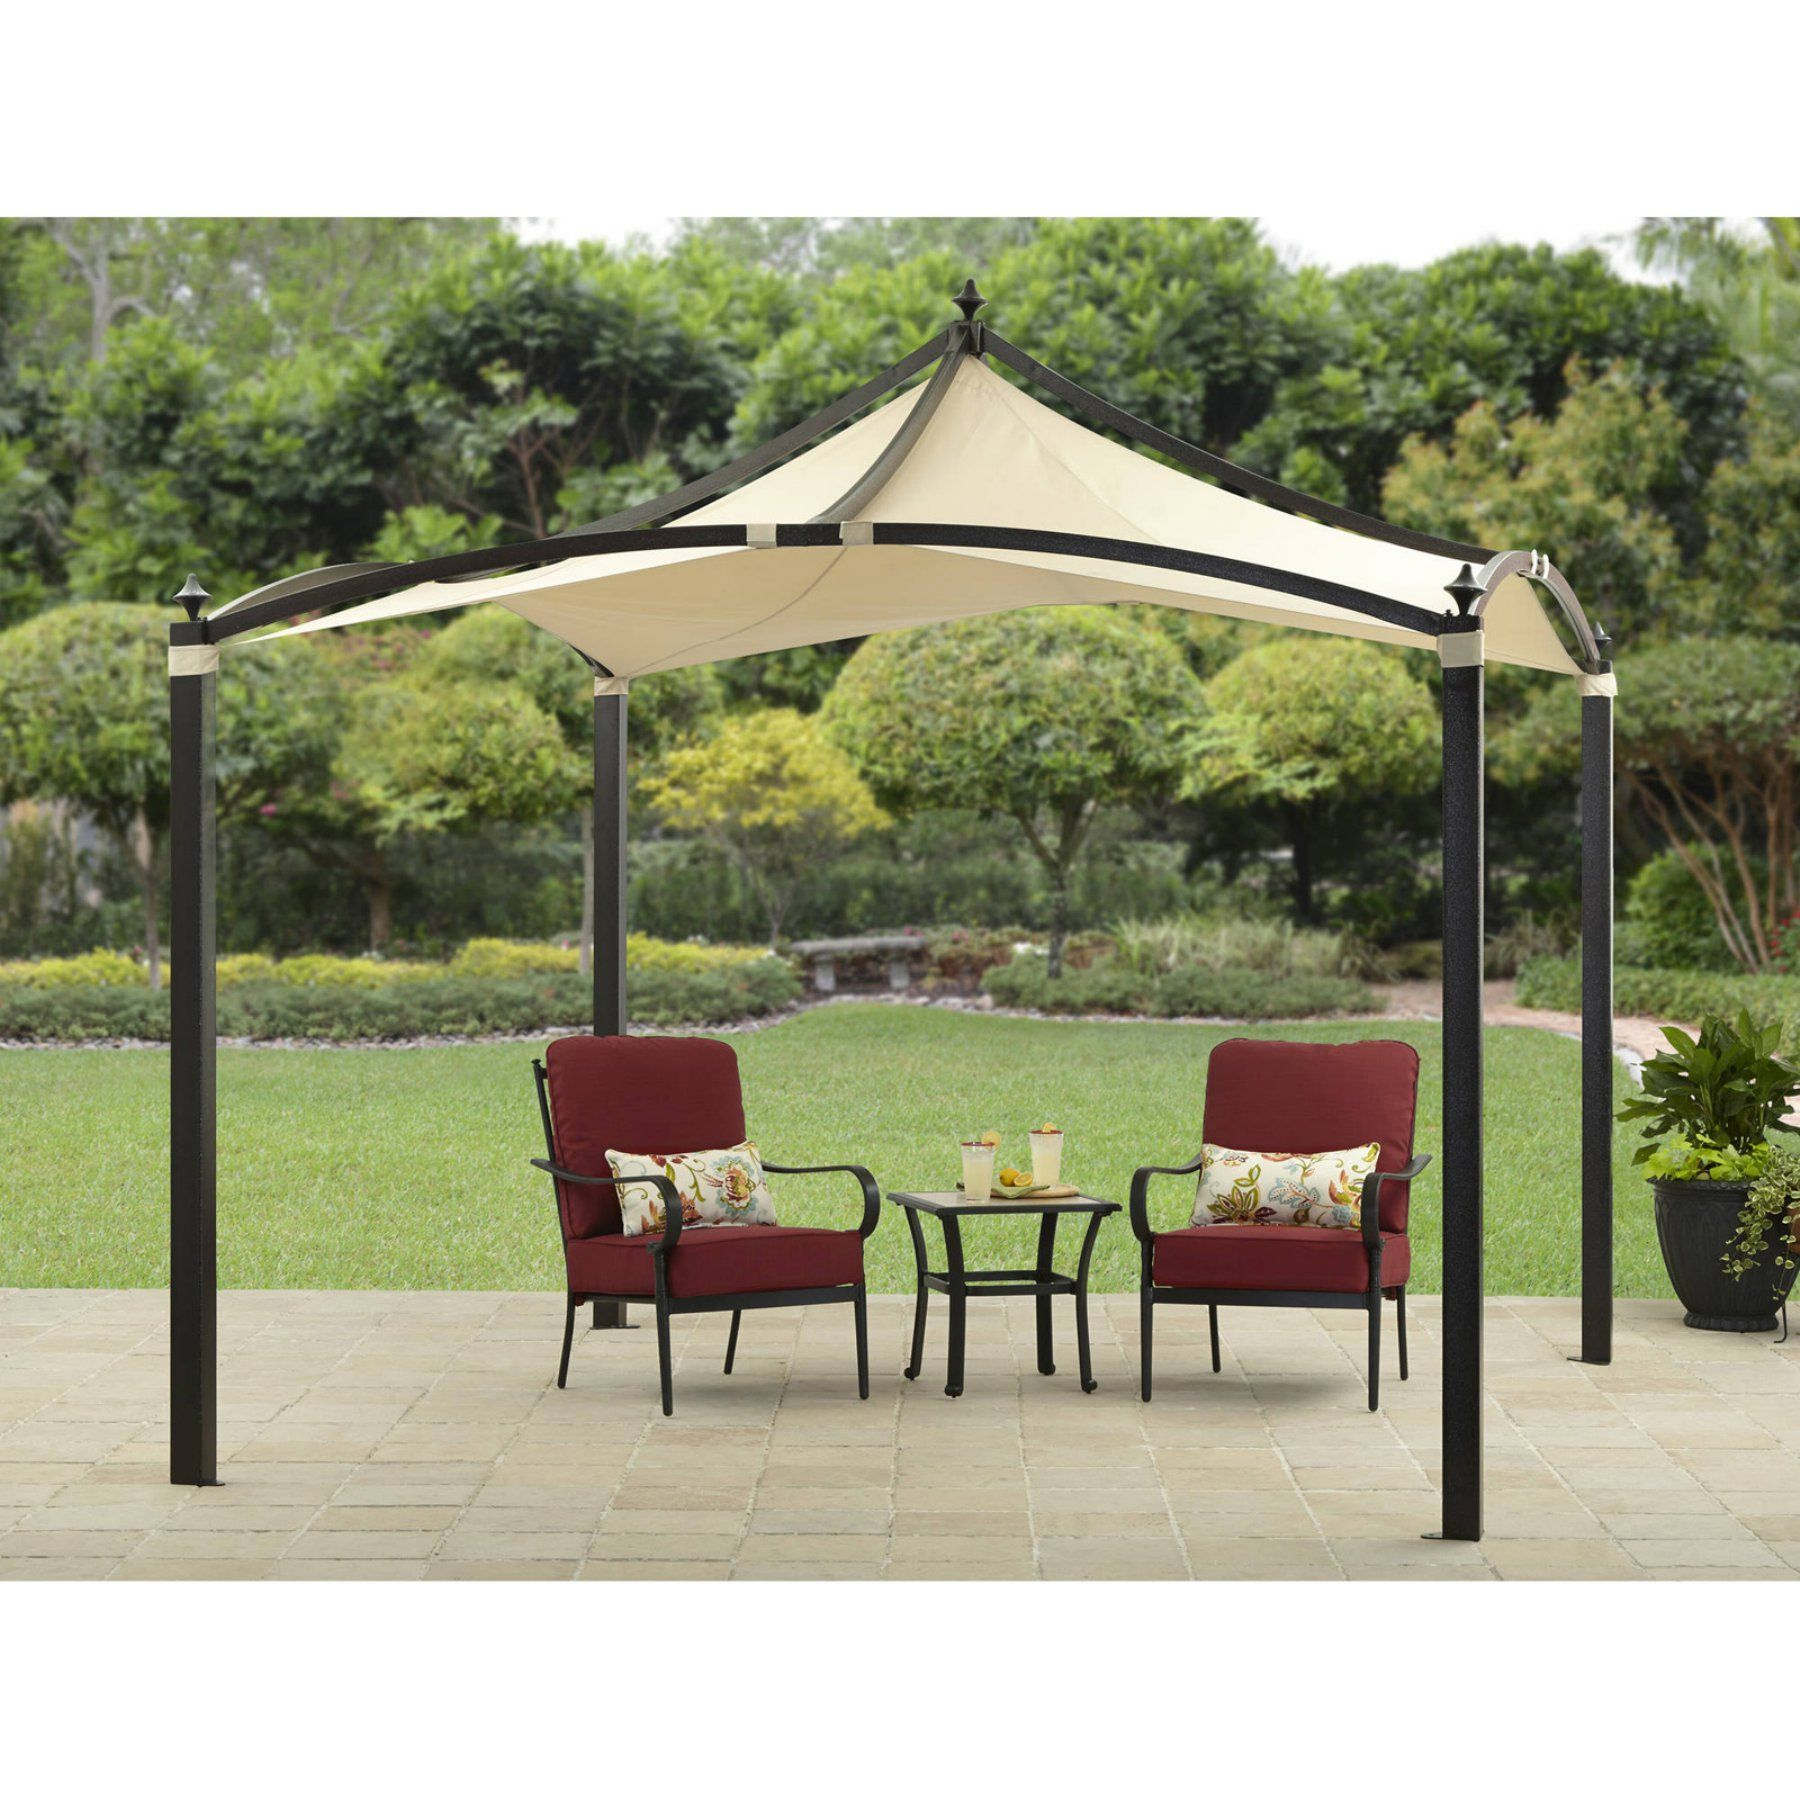 Modern 10x10 Ft Gazebo Pergola Square Canopy White Beige Outdoor Patio Deck Picclick Com Pergola Pergola Patio Gazebo Pergola